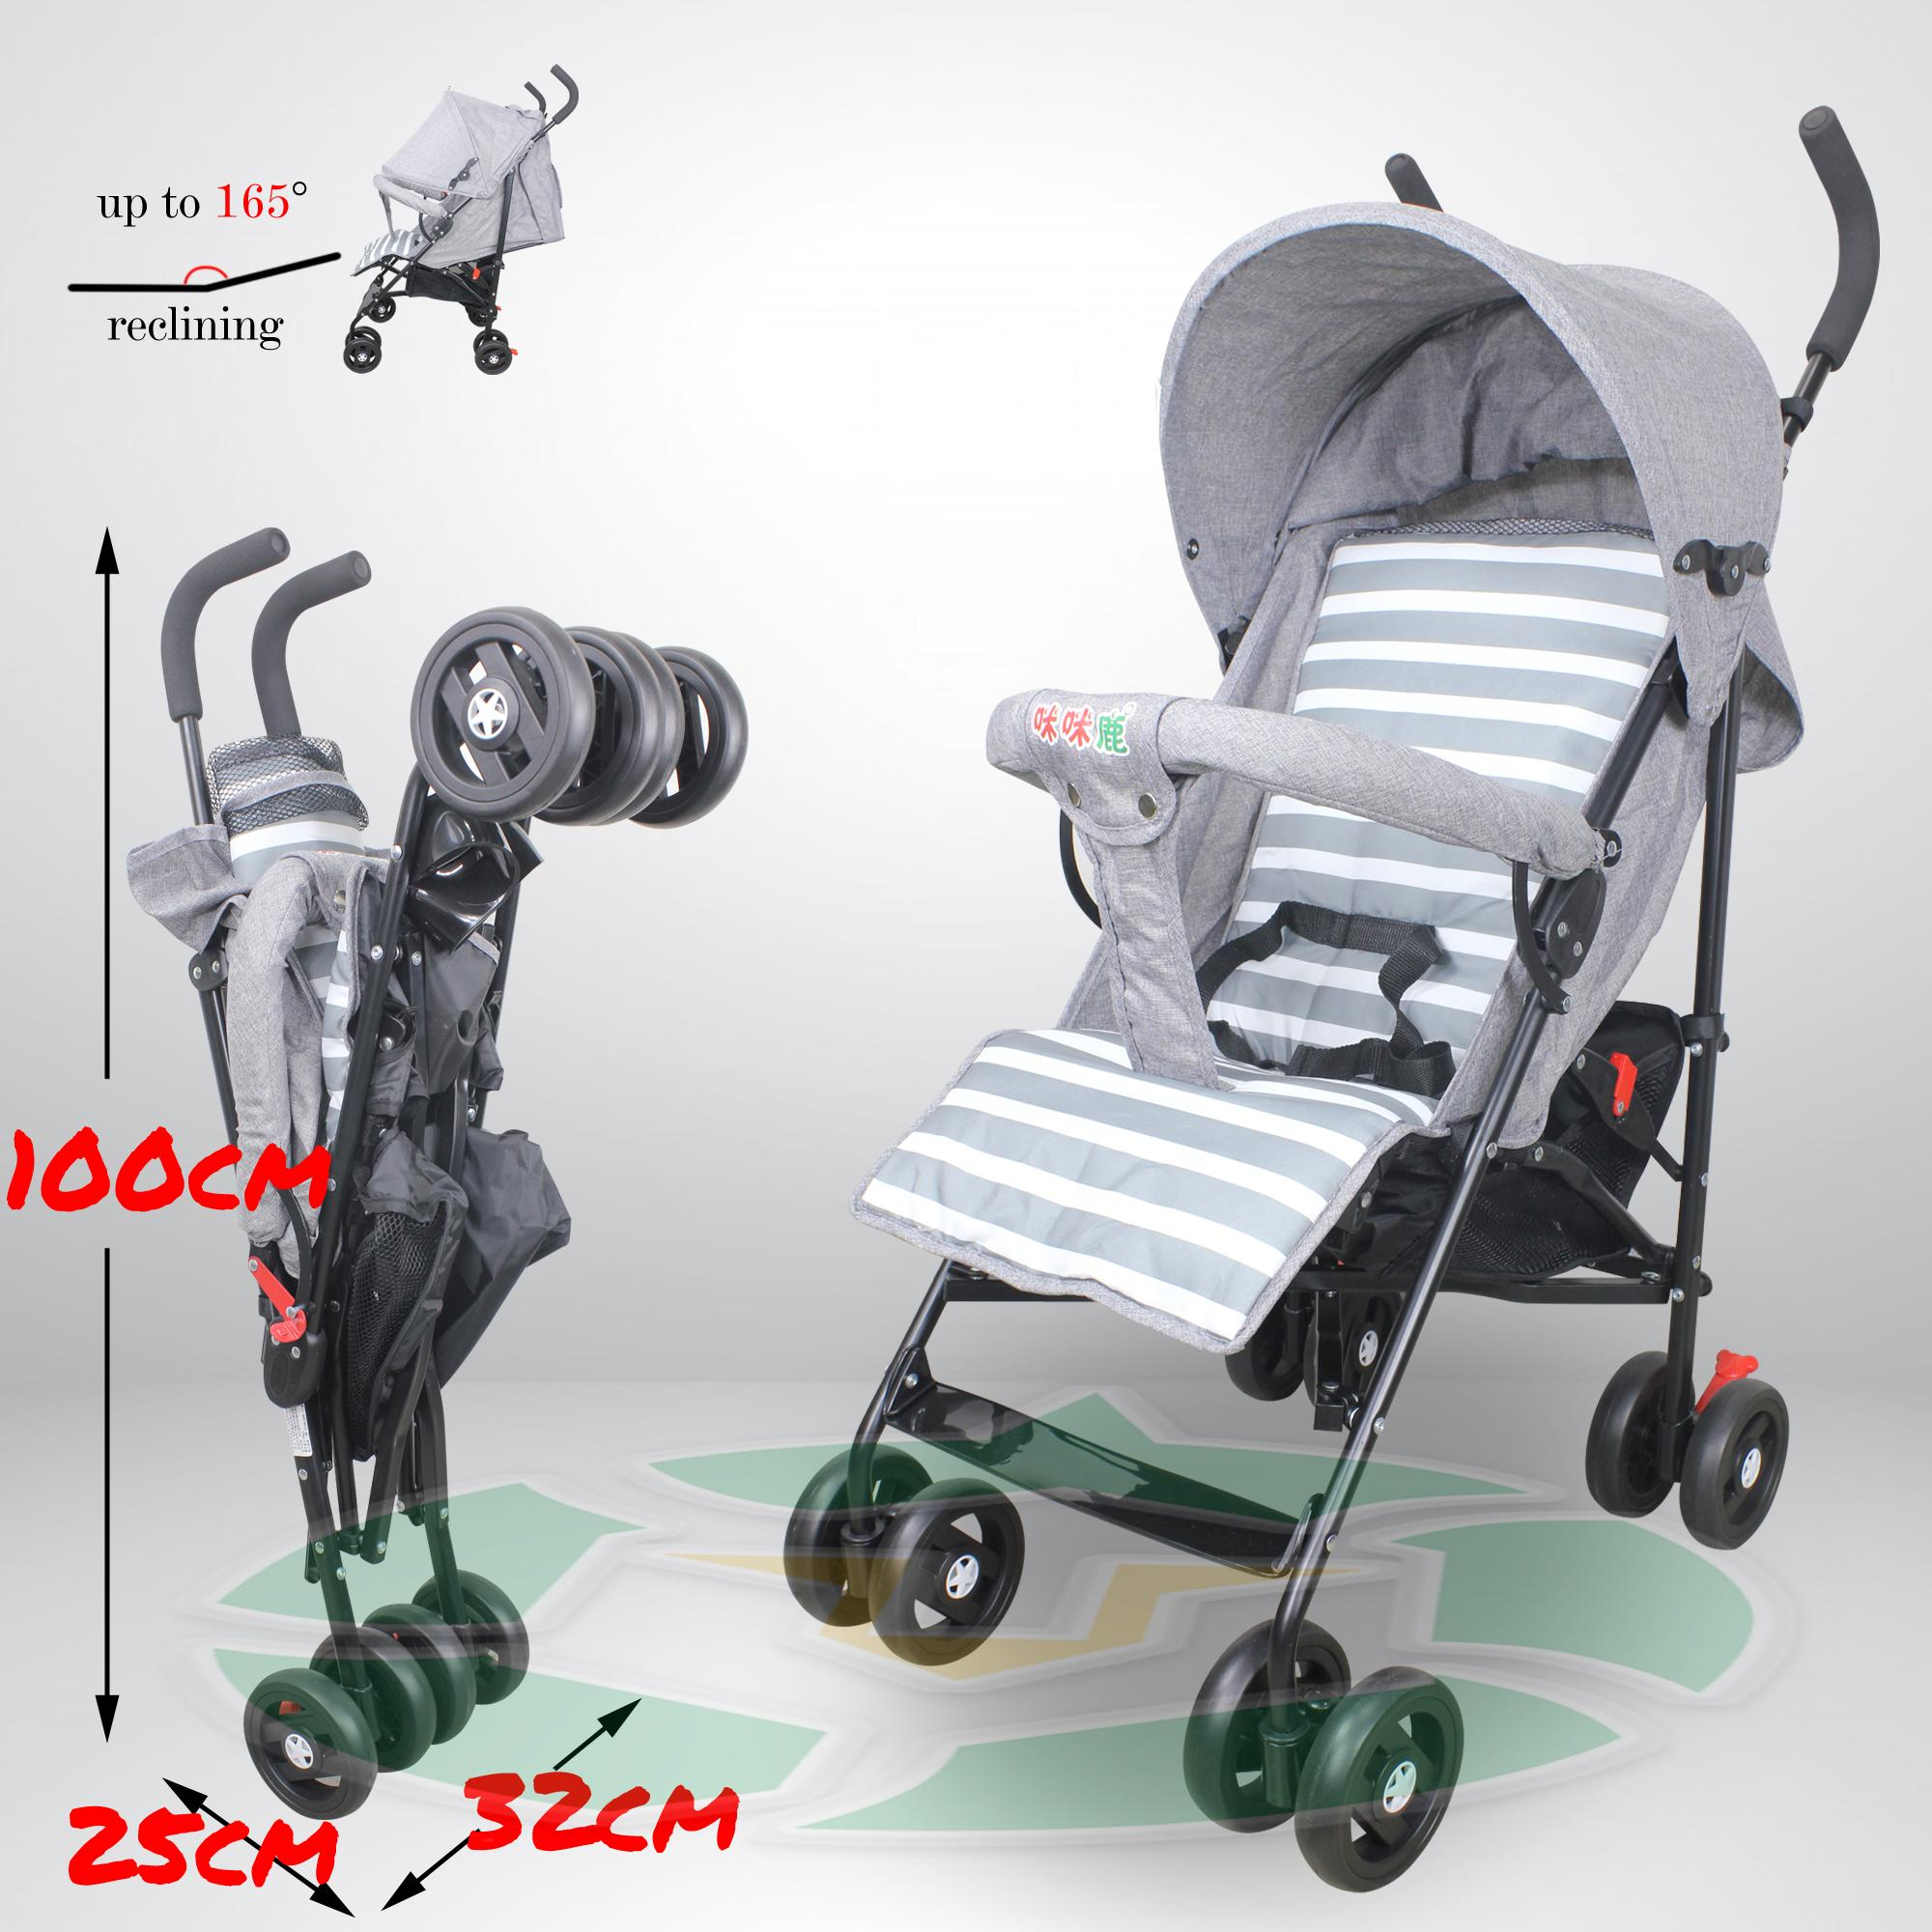 S600 Foldable And Portable Lightweight Umbrella Baby Stroller By Unicorn Selected.